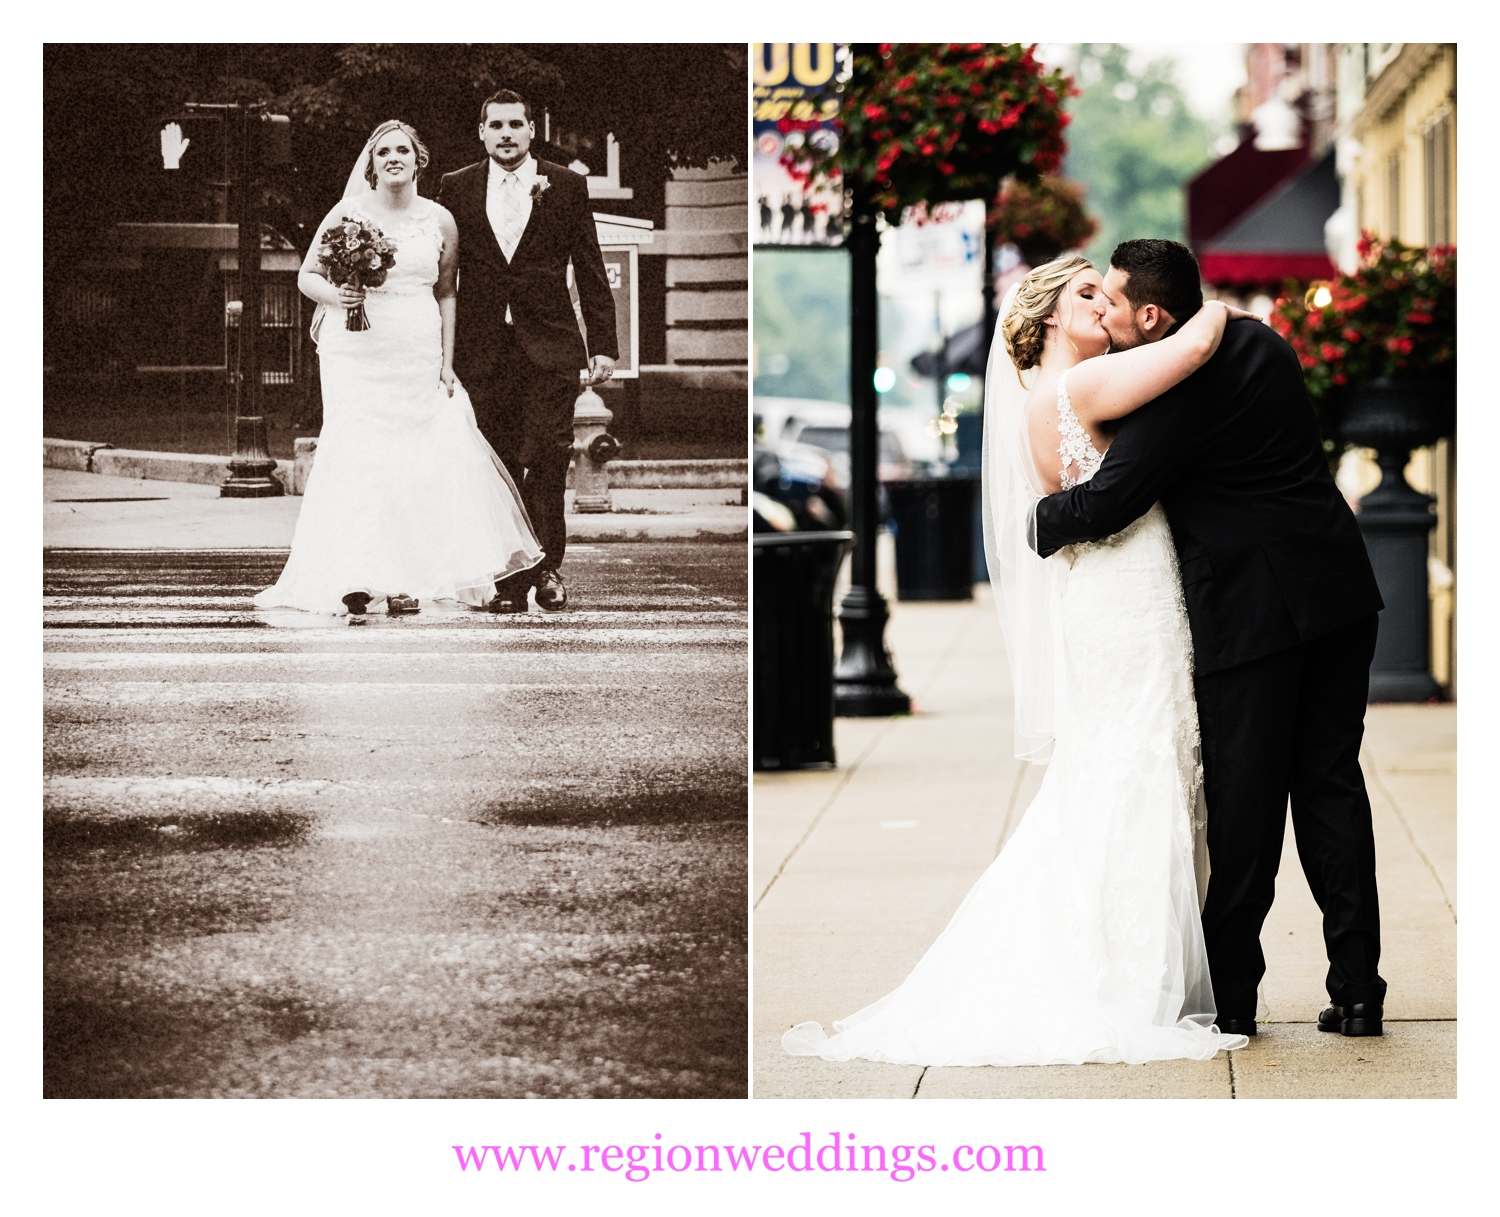 The bride and groom take to the streets of the downtown Crown Point Square.